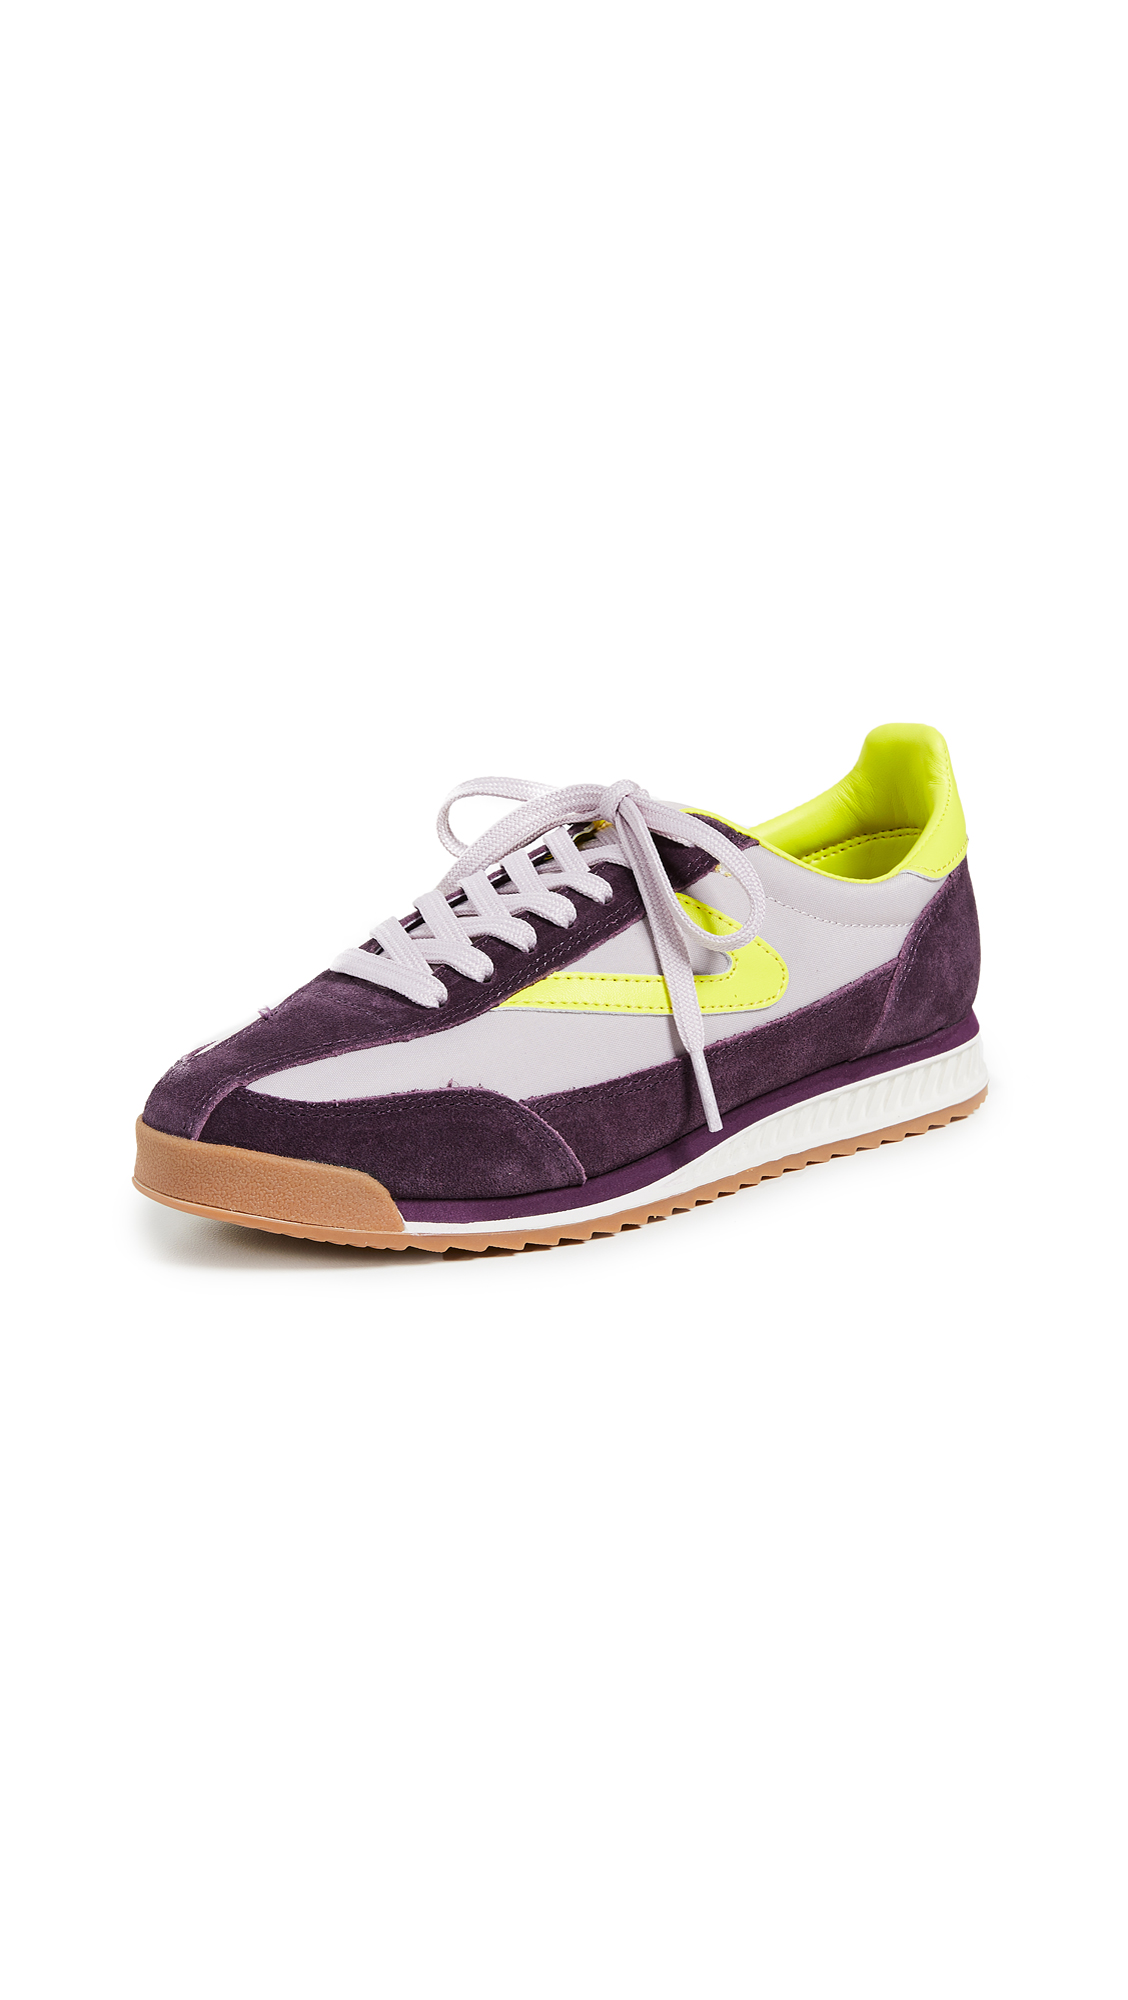 Tretorn Rawlins III Jogger Sneakers - Eggplant/Lilac/Yellow